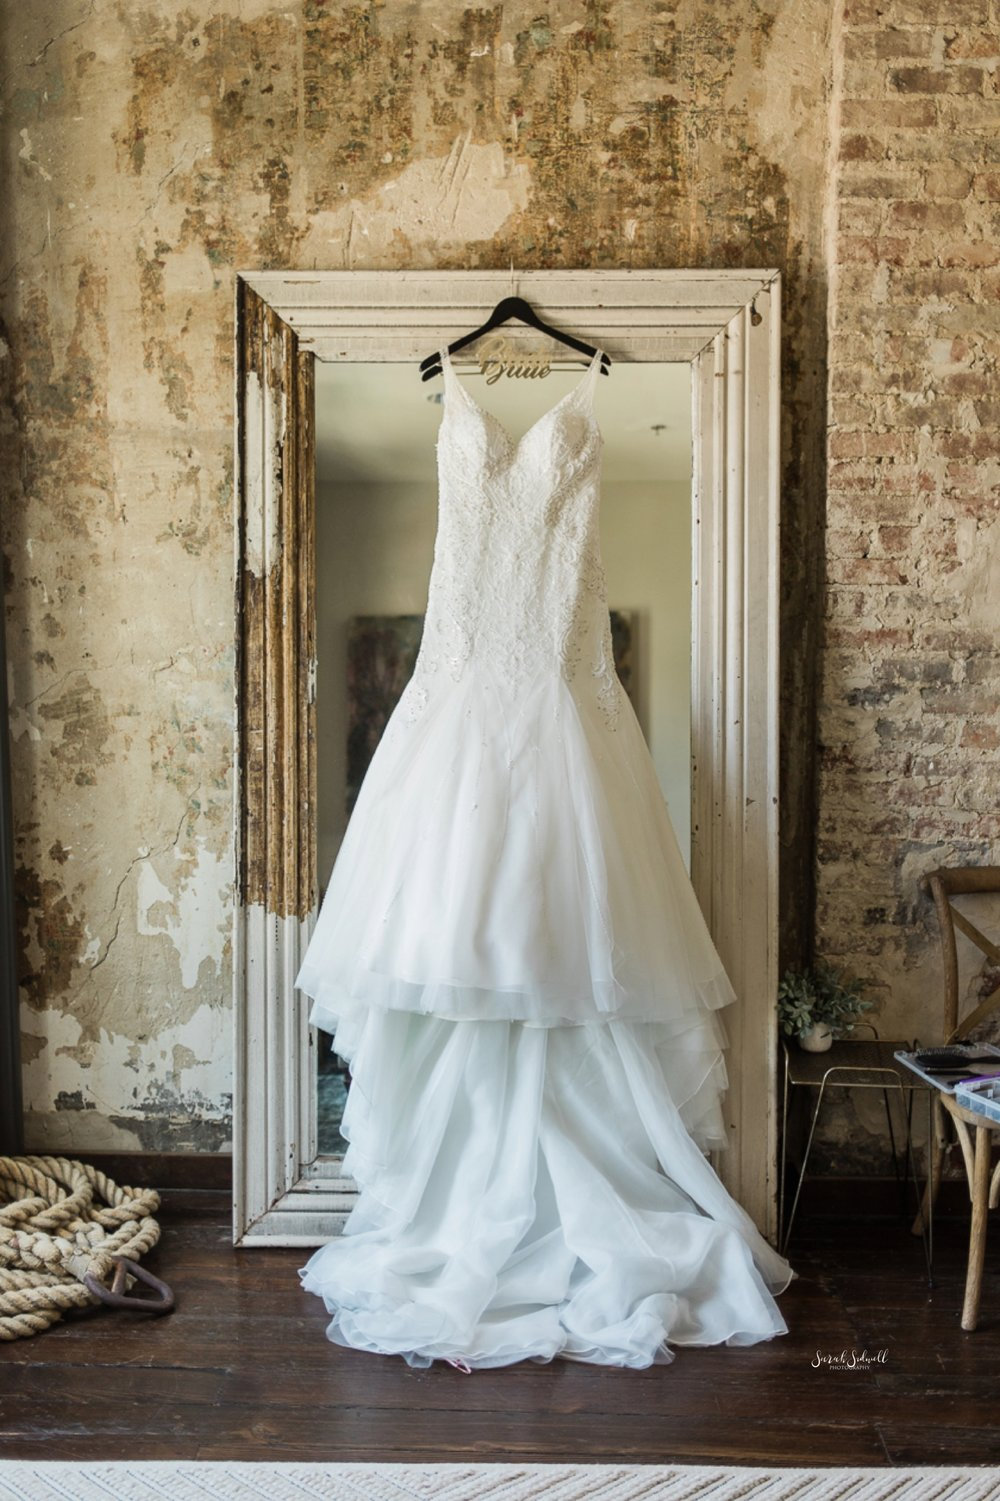 A wedding dress is hanging in a doorway of a venue.